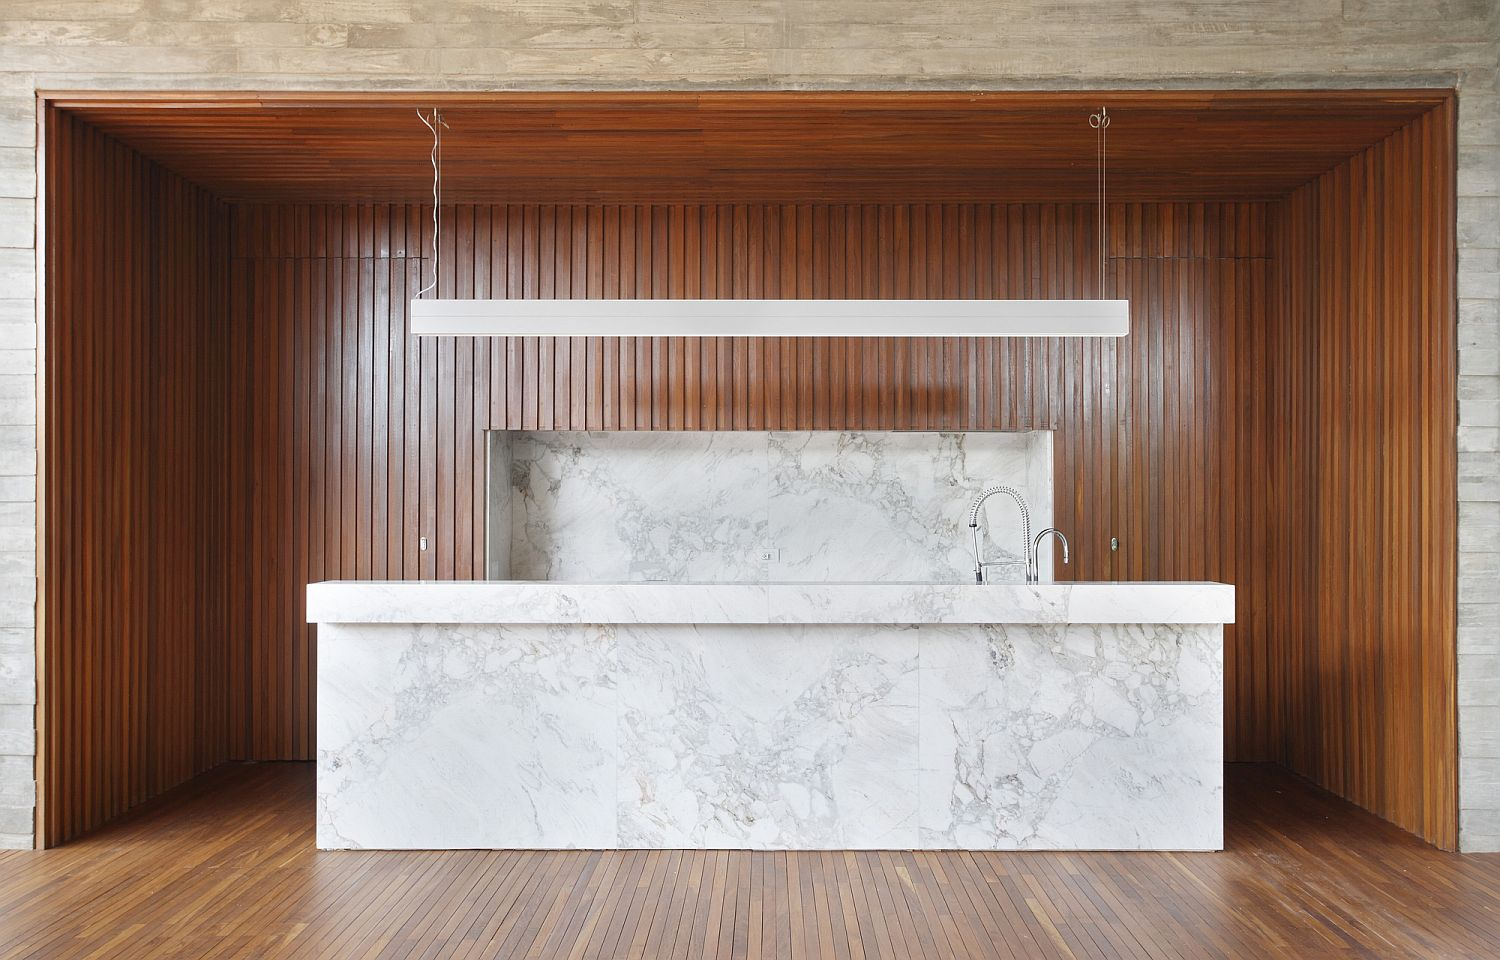 Spectacular and minimal gourmet kitchen in wood and marble